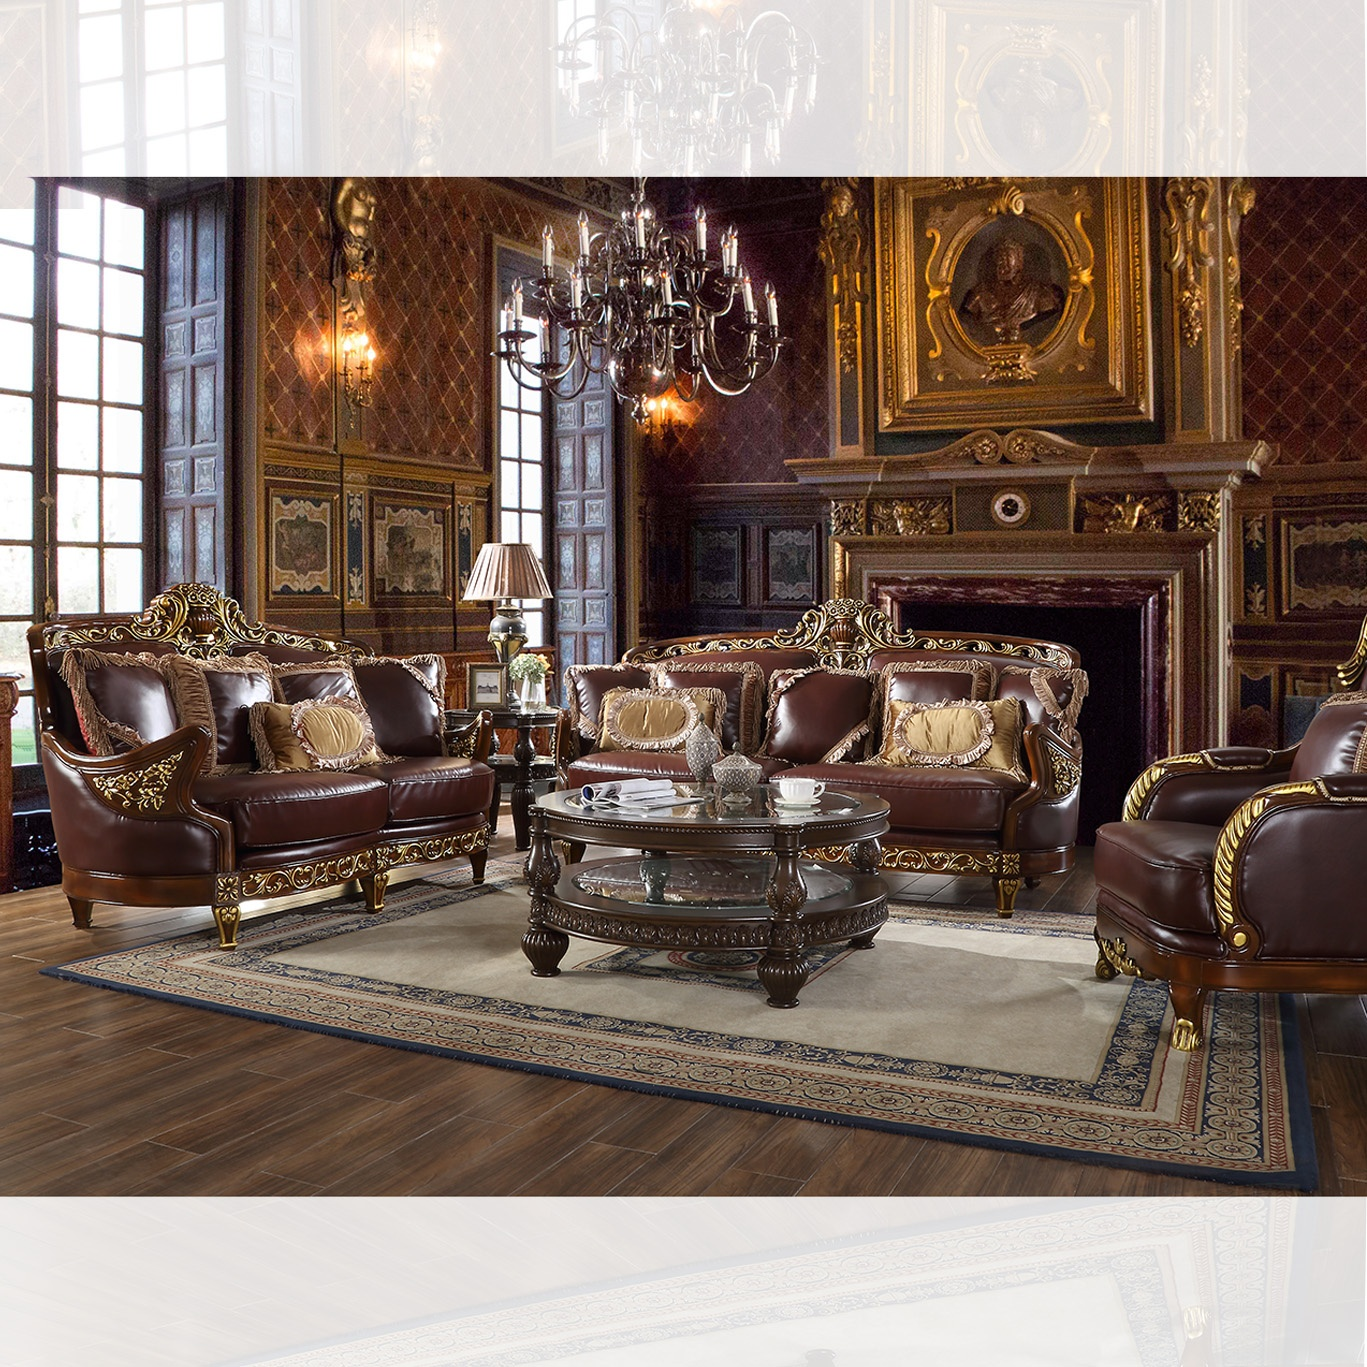 Traditional Living Room Set 3 PCS in Brown Leather Traditional Style Homey Design HD-89